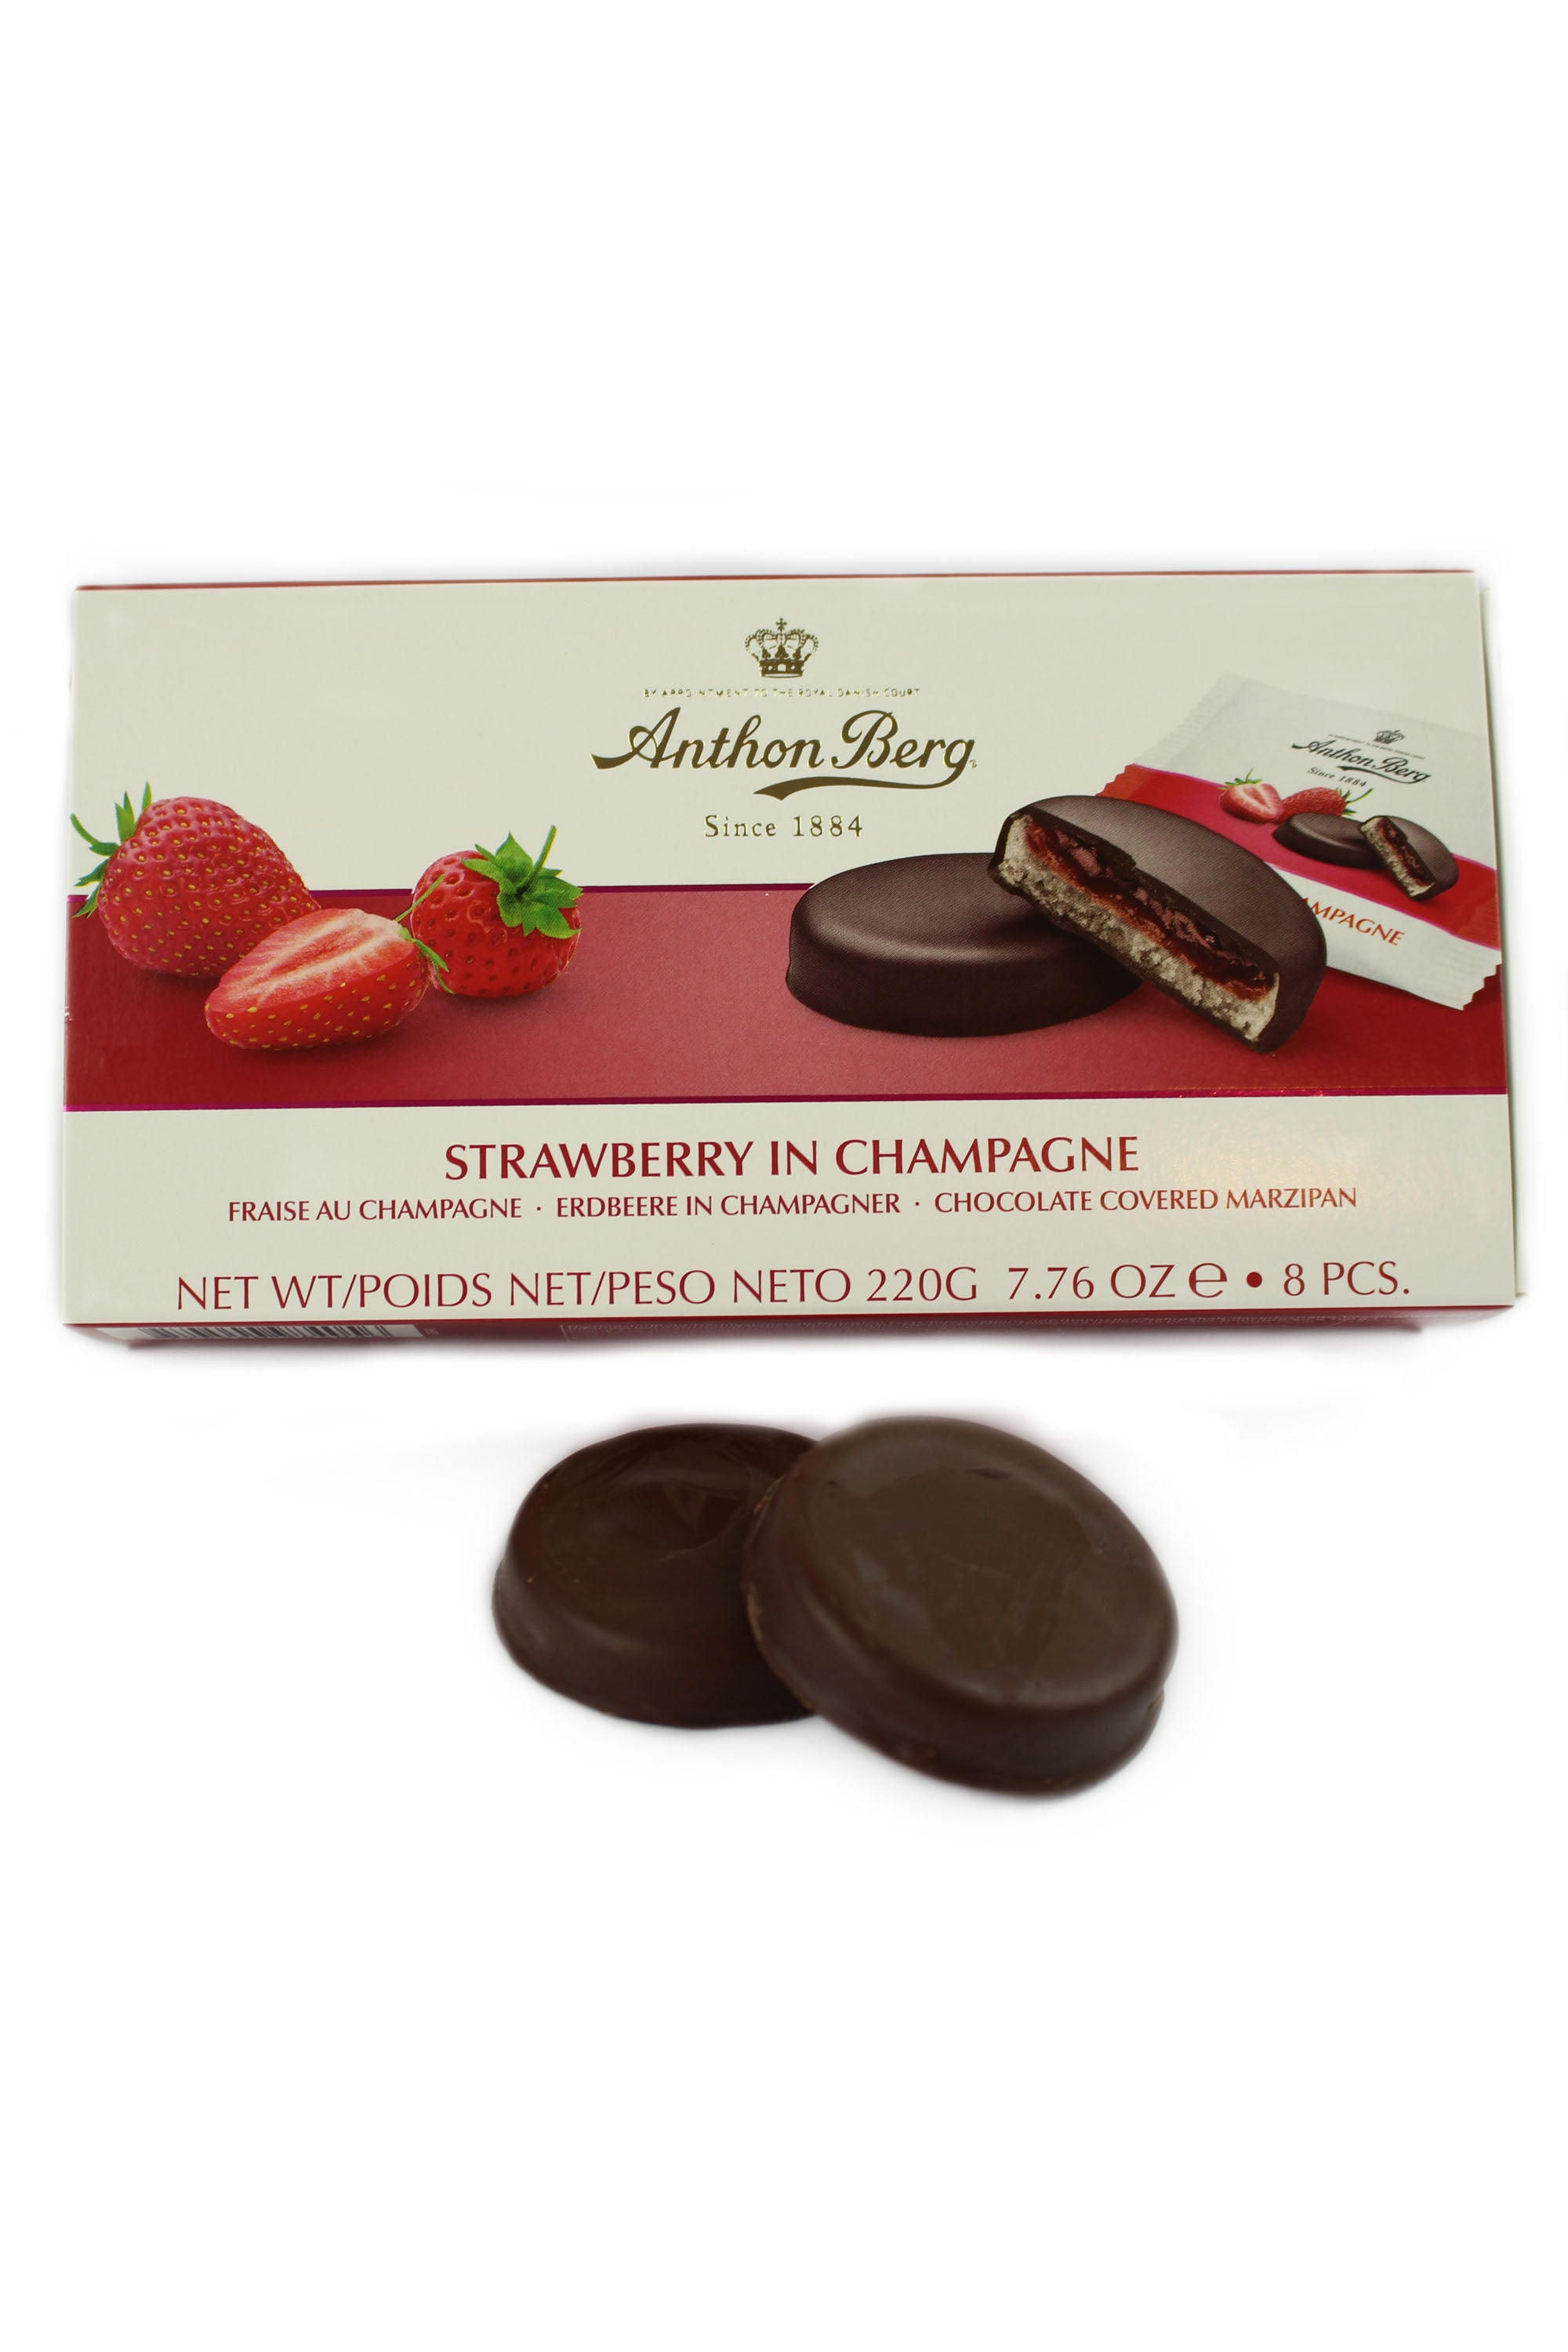 Strawberries in Champagne Marzipan Liqueurs